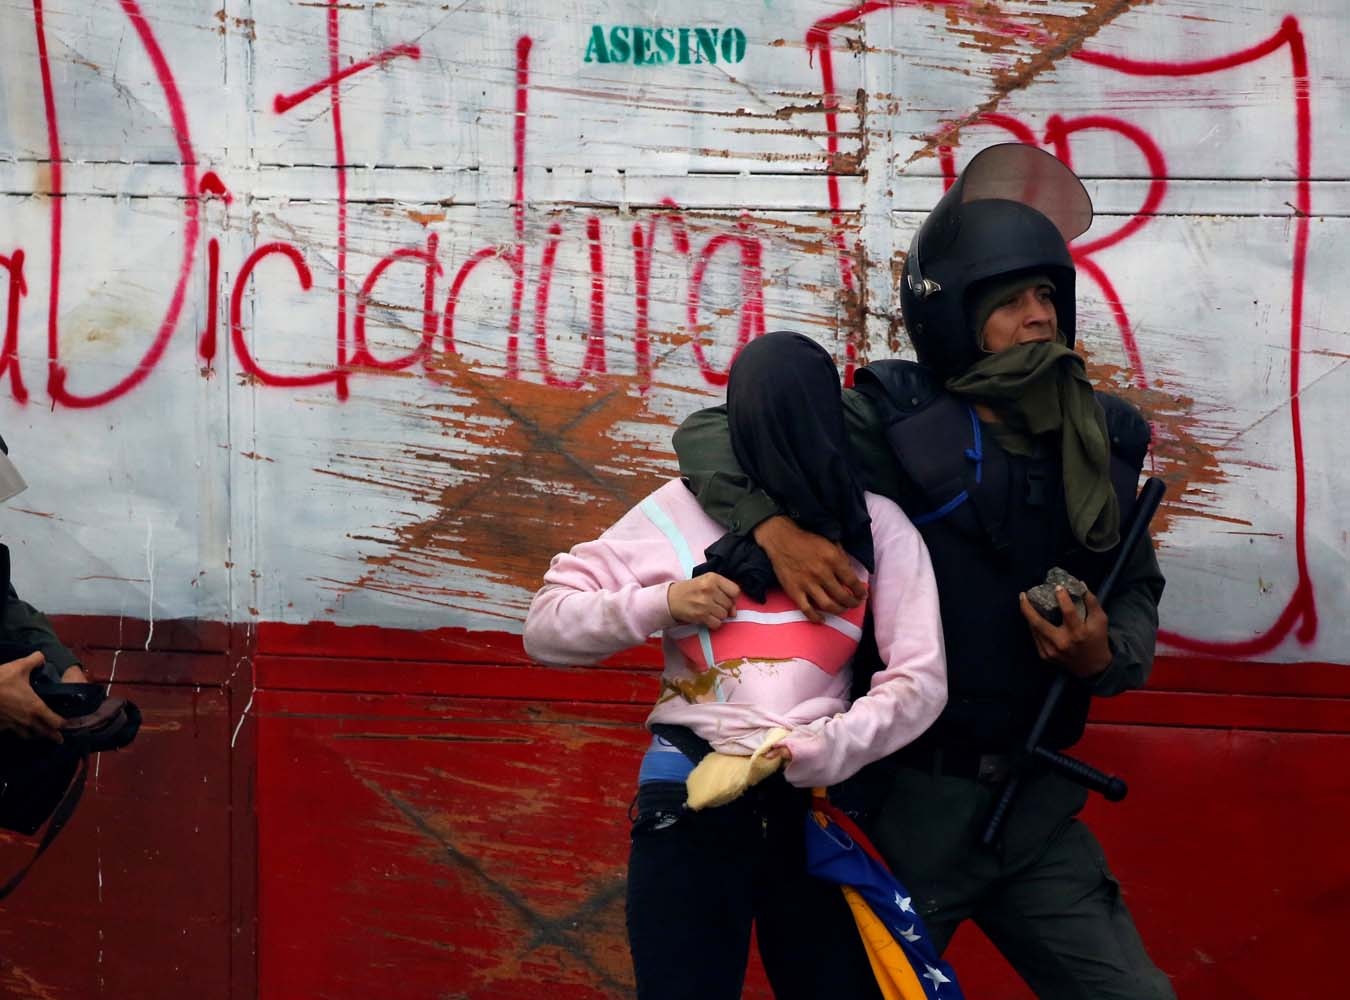 """Riot security forces detain a demonstrator during a rally against Venezuela's President Nicolas Maduro's government in Caracas, Venezuela, July 28, 2017. The graffiti on the back reads """"Dictatorship"""". REUTERS/Carlos Garcia Rawlins"""